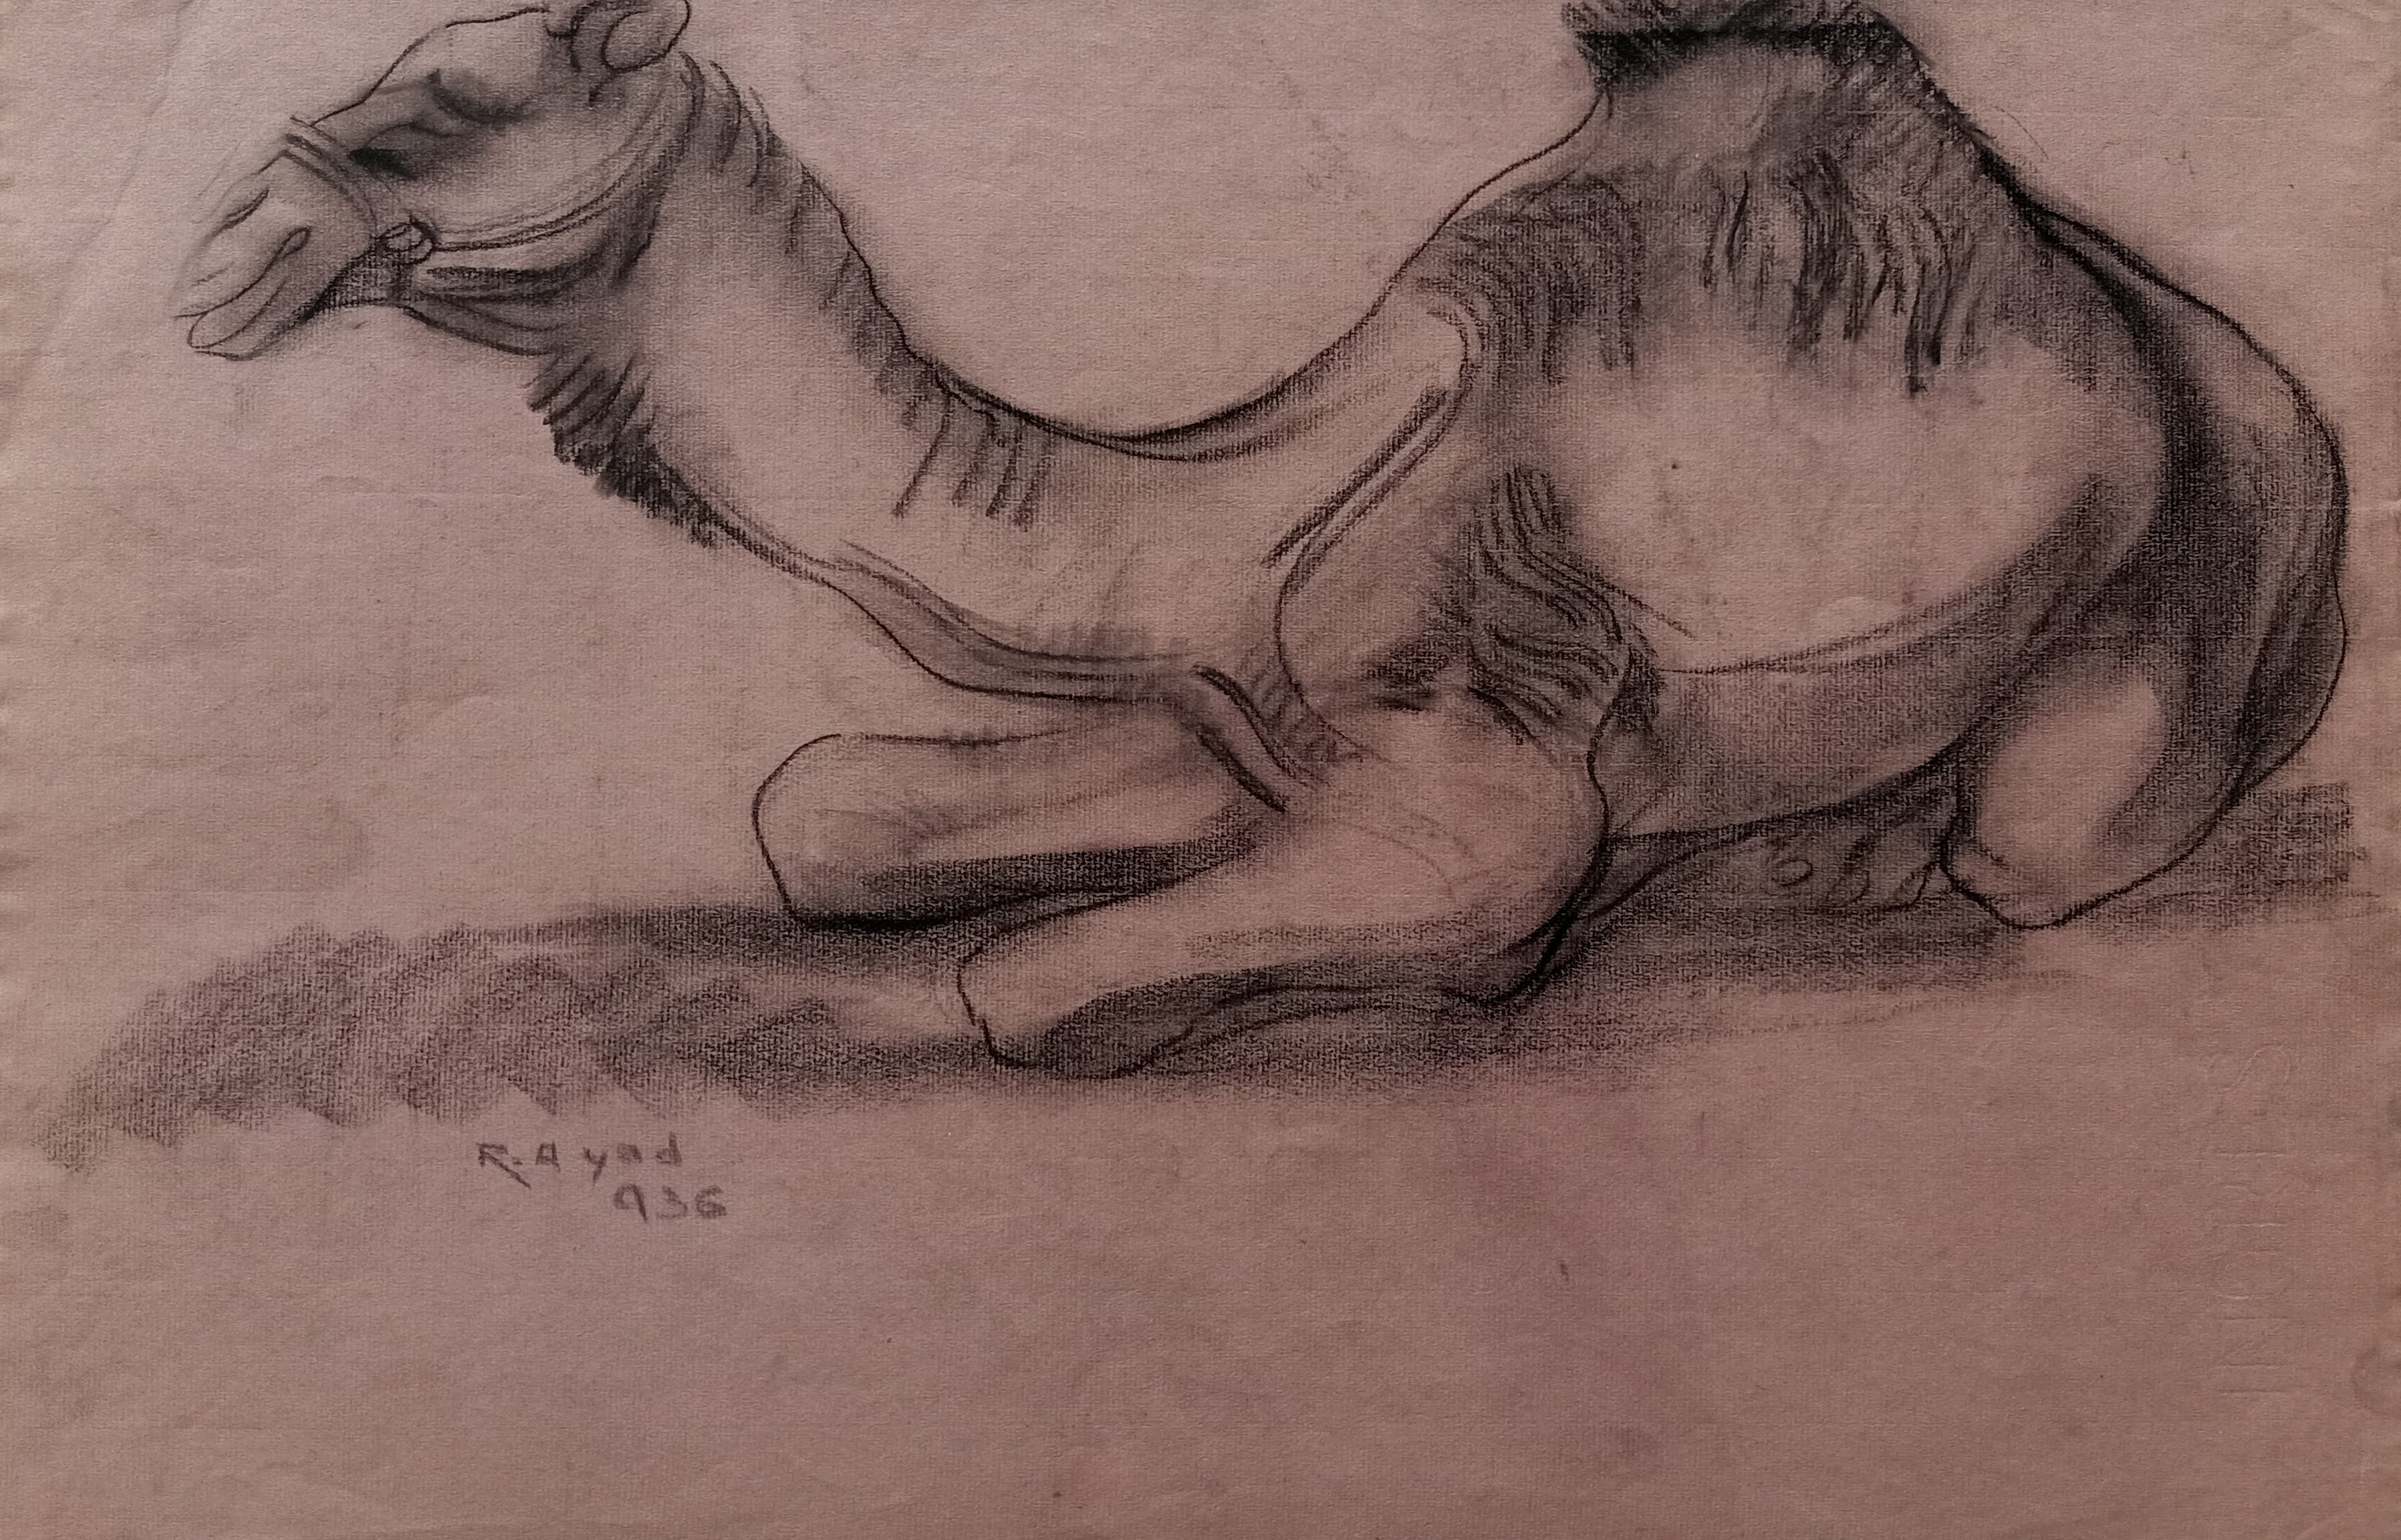 Ragheb Ayad, Sitting Camel 1936 Mixed media on paper 31×48 cm Signed and dated